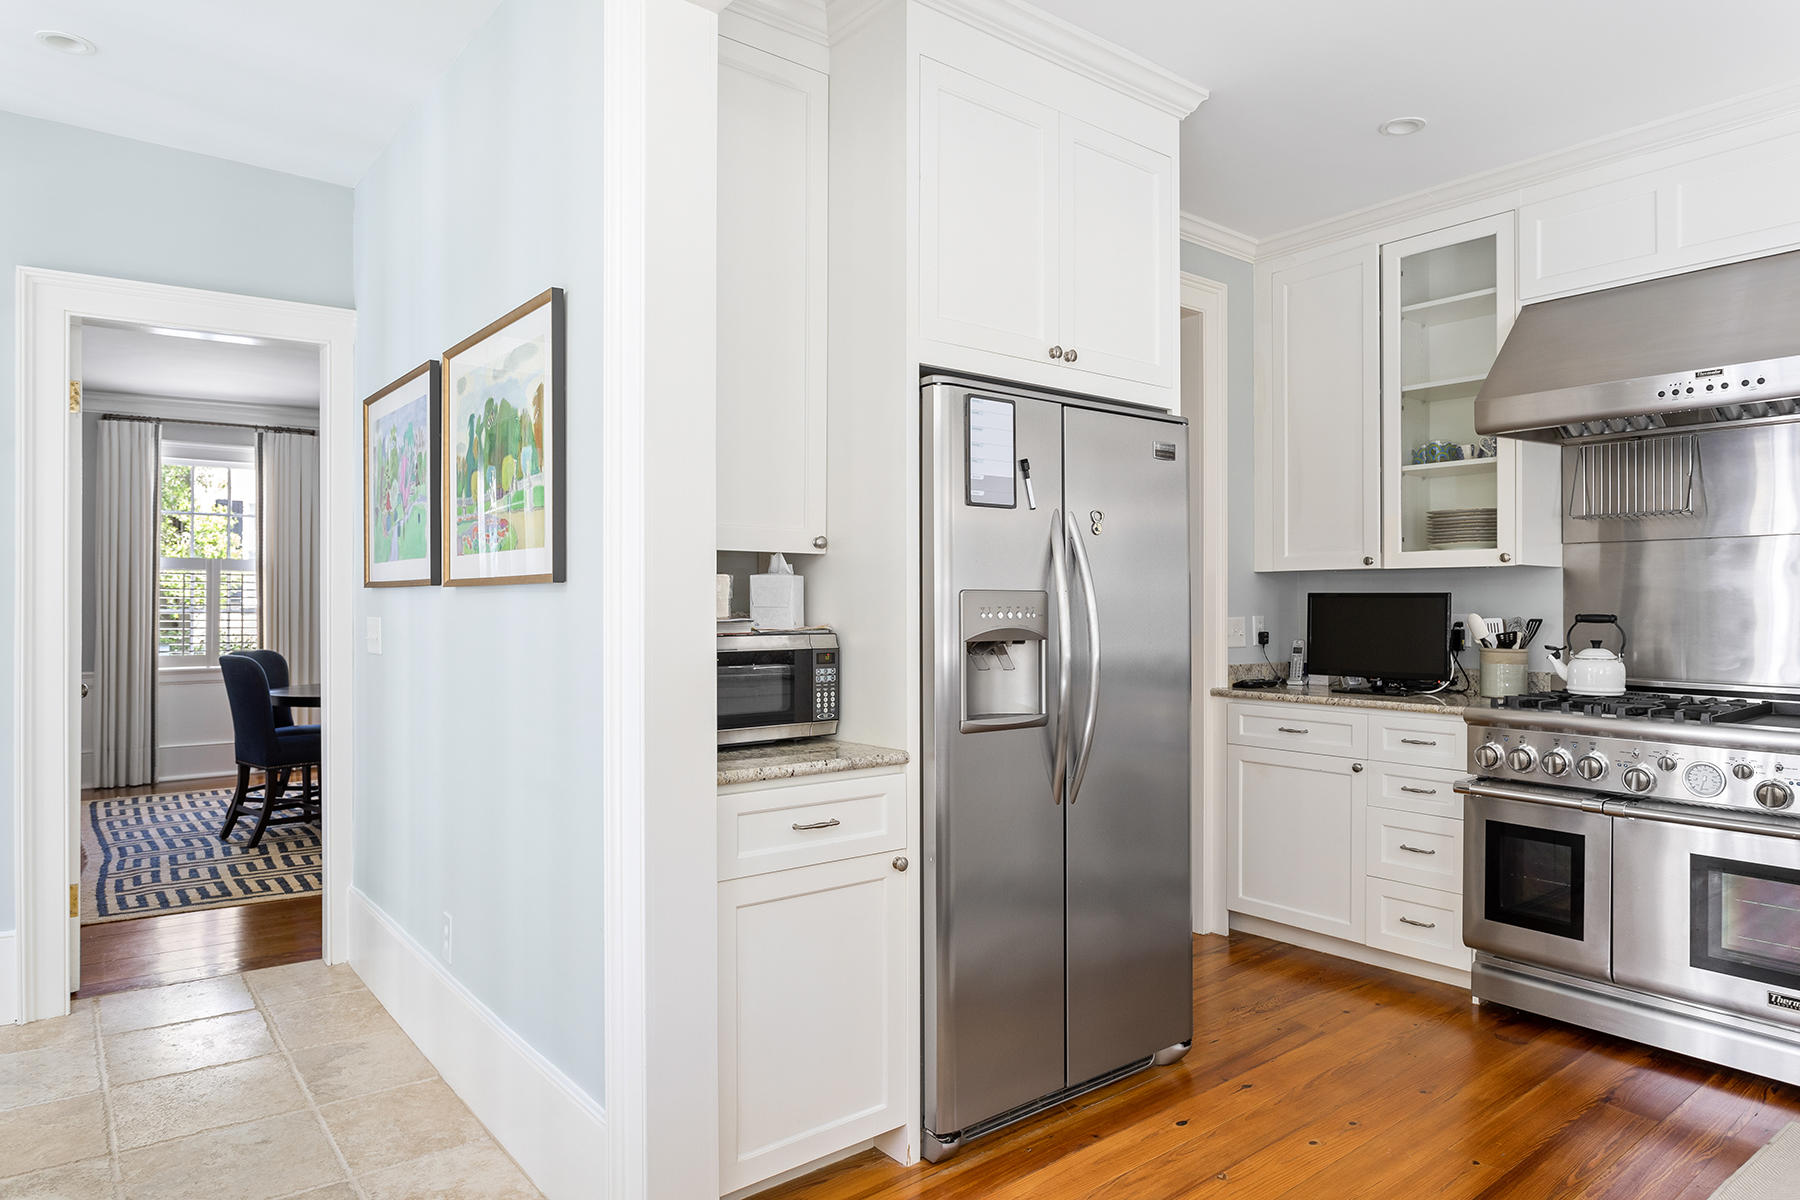 South of Broad Homes For Sale - 3 Atlantic, Charleston, SC - 3